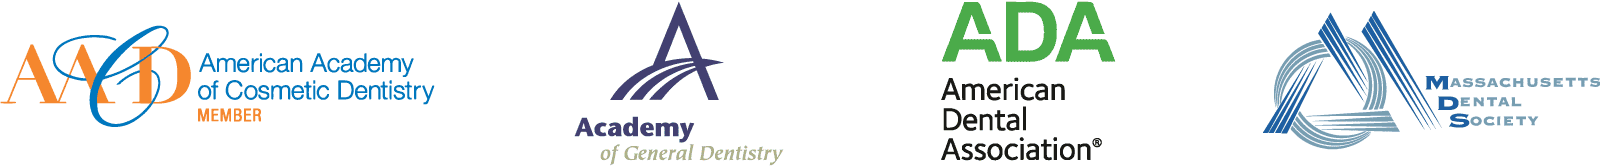 Dr. Sheng's accredations from the American Association of Cosmetic Dentistry, Academy of General Dentistry, American Dental Association, and the Massachusetts Dental Society